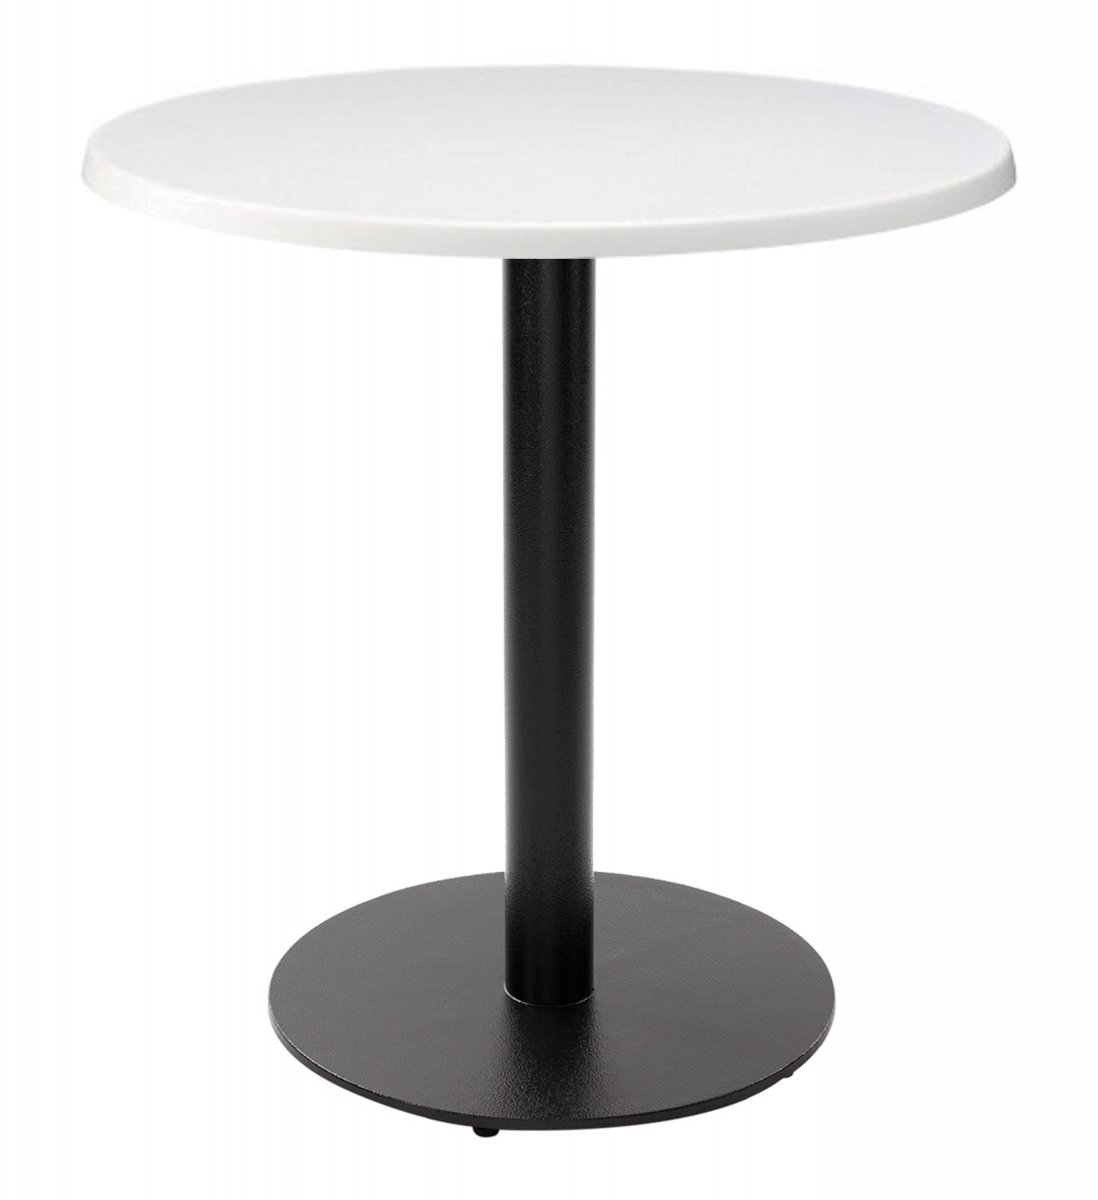 Forza Round Dining Table - White With Black Column